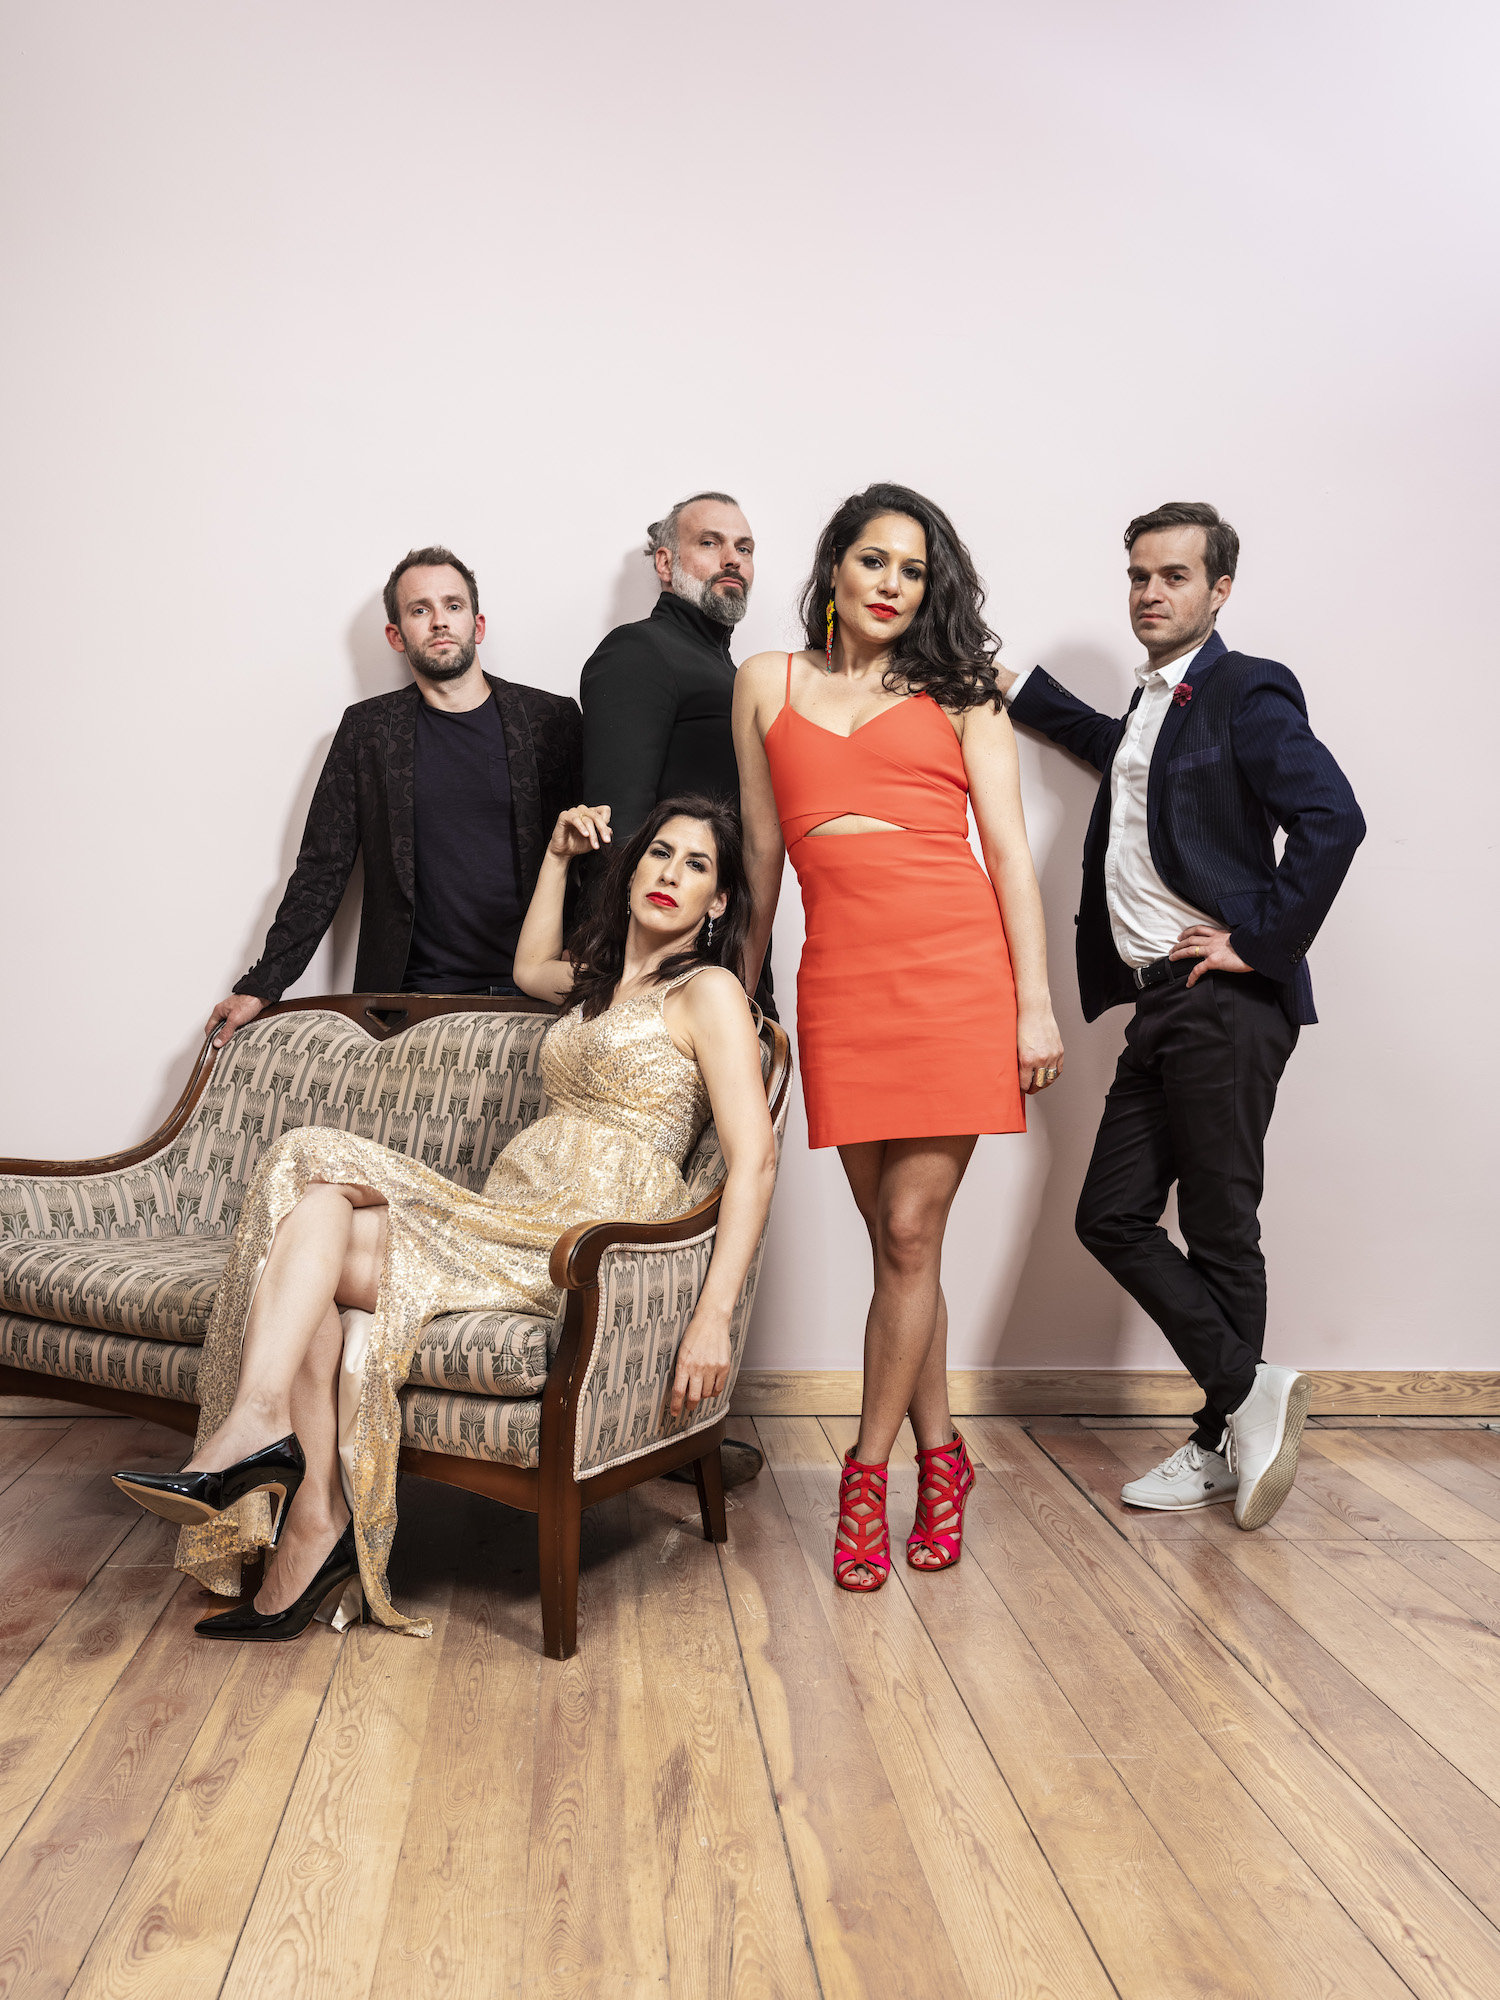 Internationally Acclaimed Emoción Makes Their U.S. Debut at Dizzy's Club Coca-Cola On July 10th